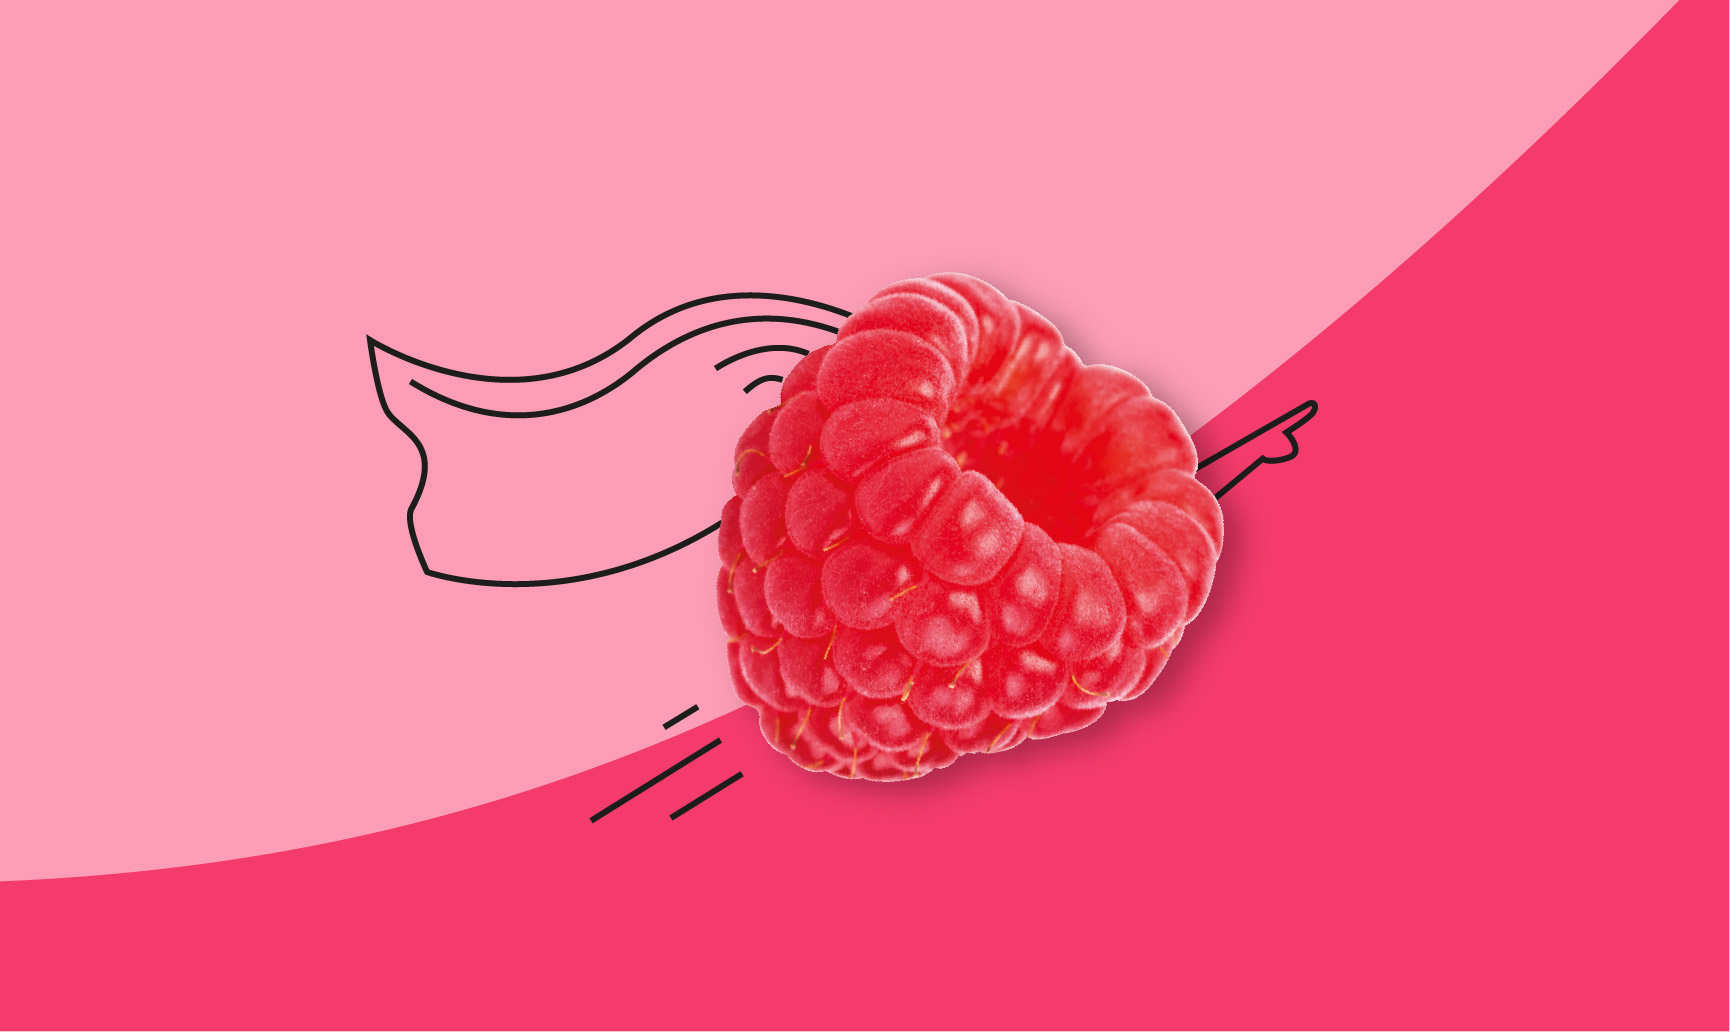 super raspberry illustration